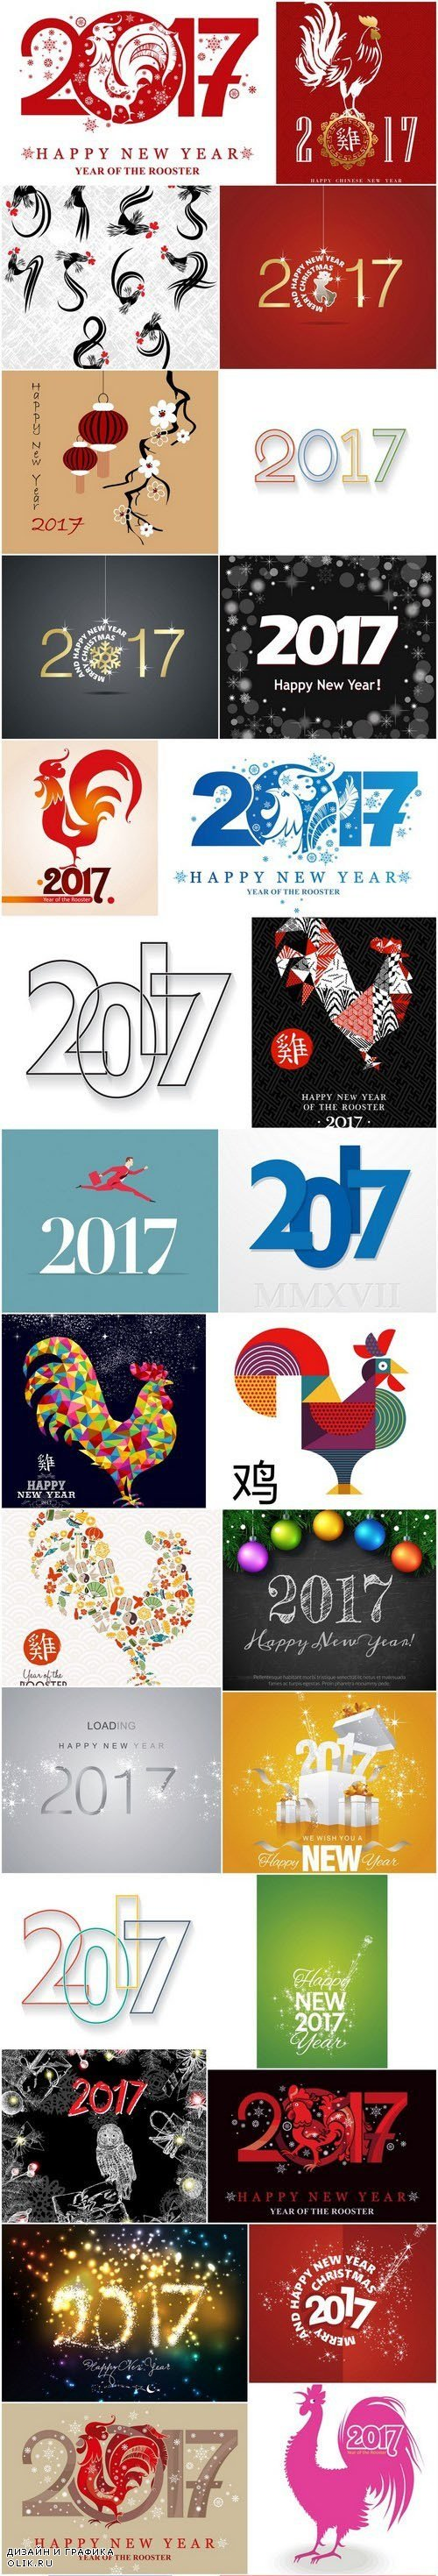 2017 - The Year of Fire Rooster - Set of 30xEPS Professional Vector Stock